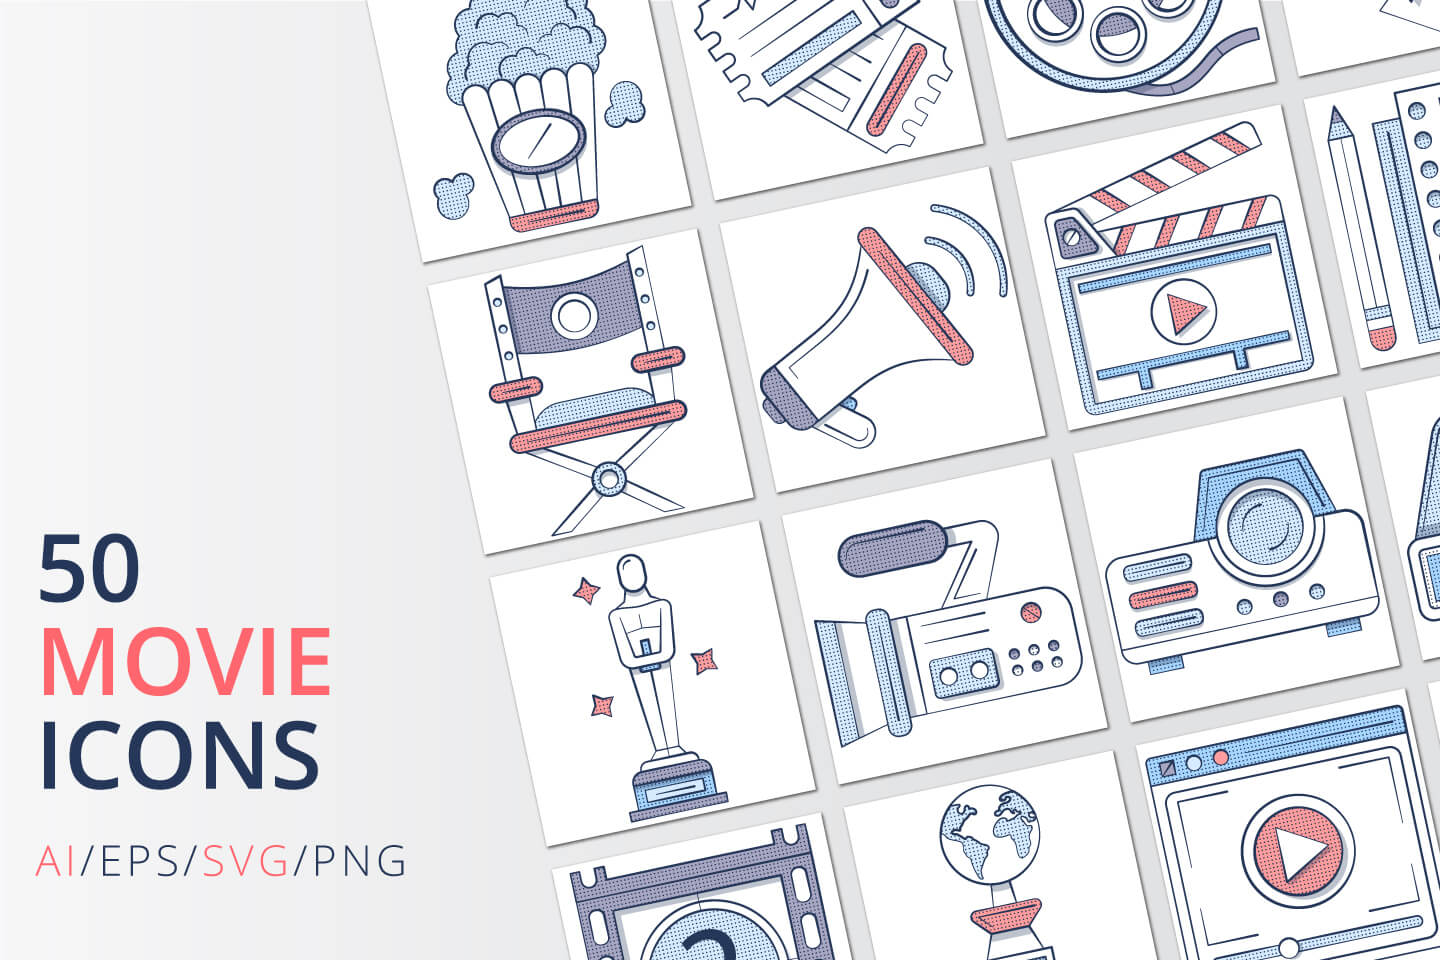 50 Movie Icons (AI, EPS, SVG, PNG files)